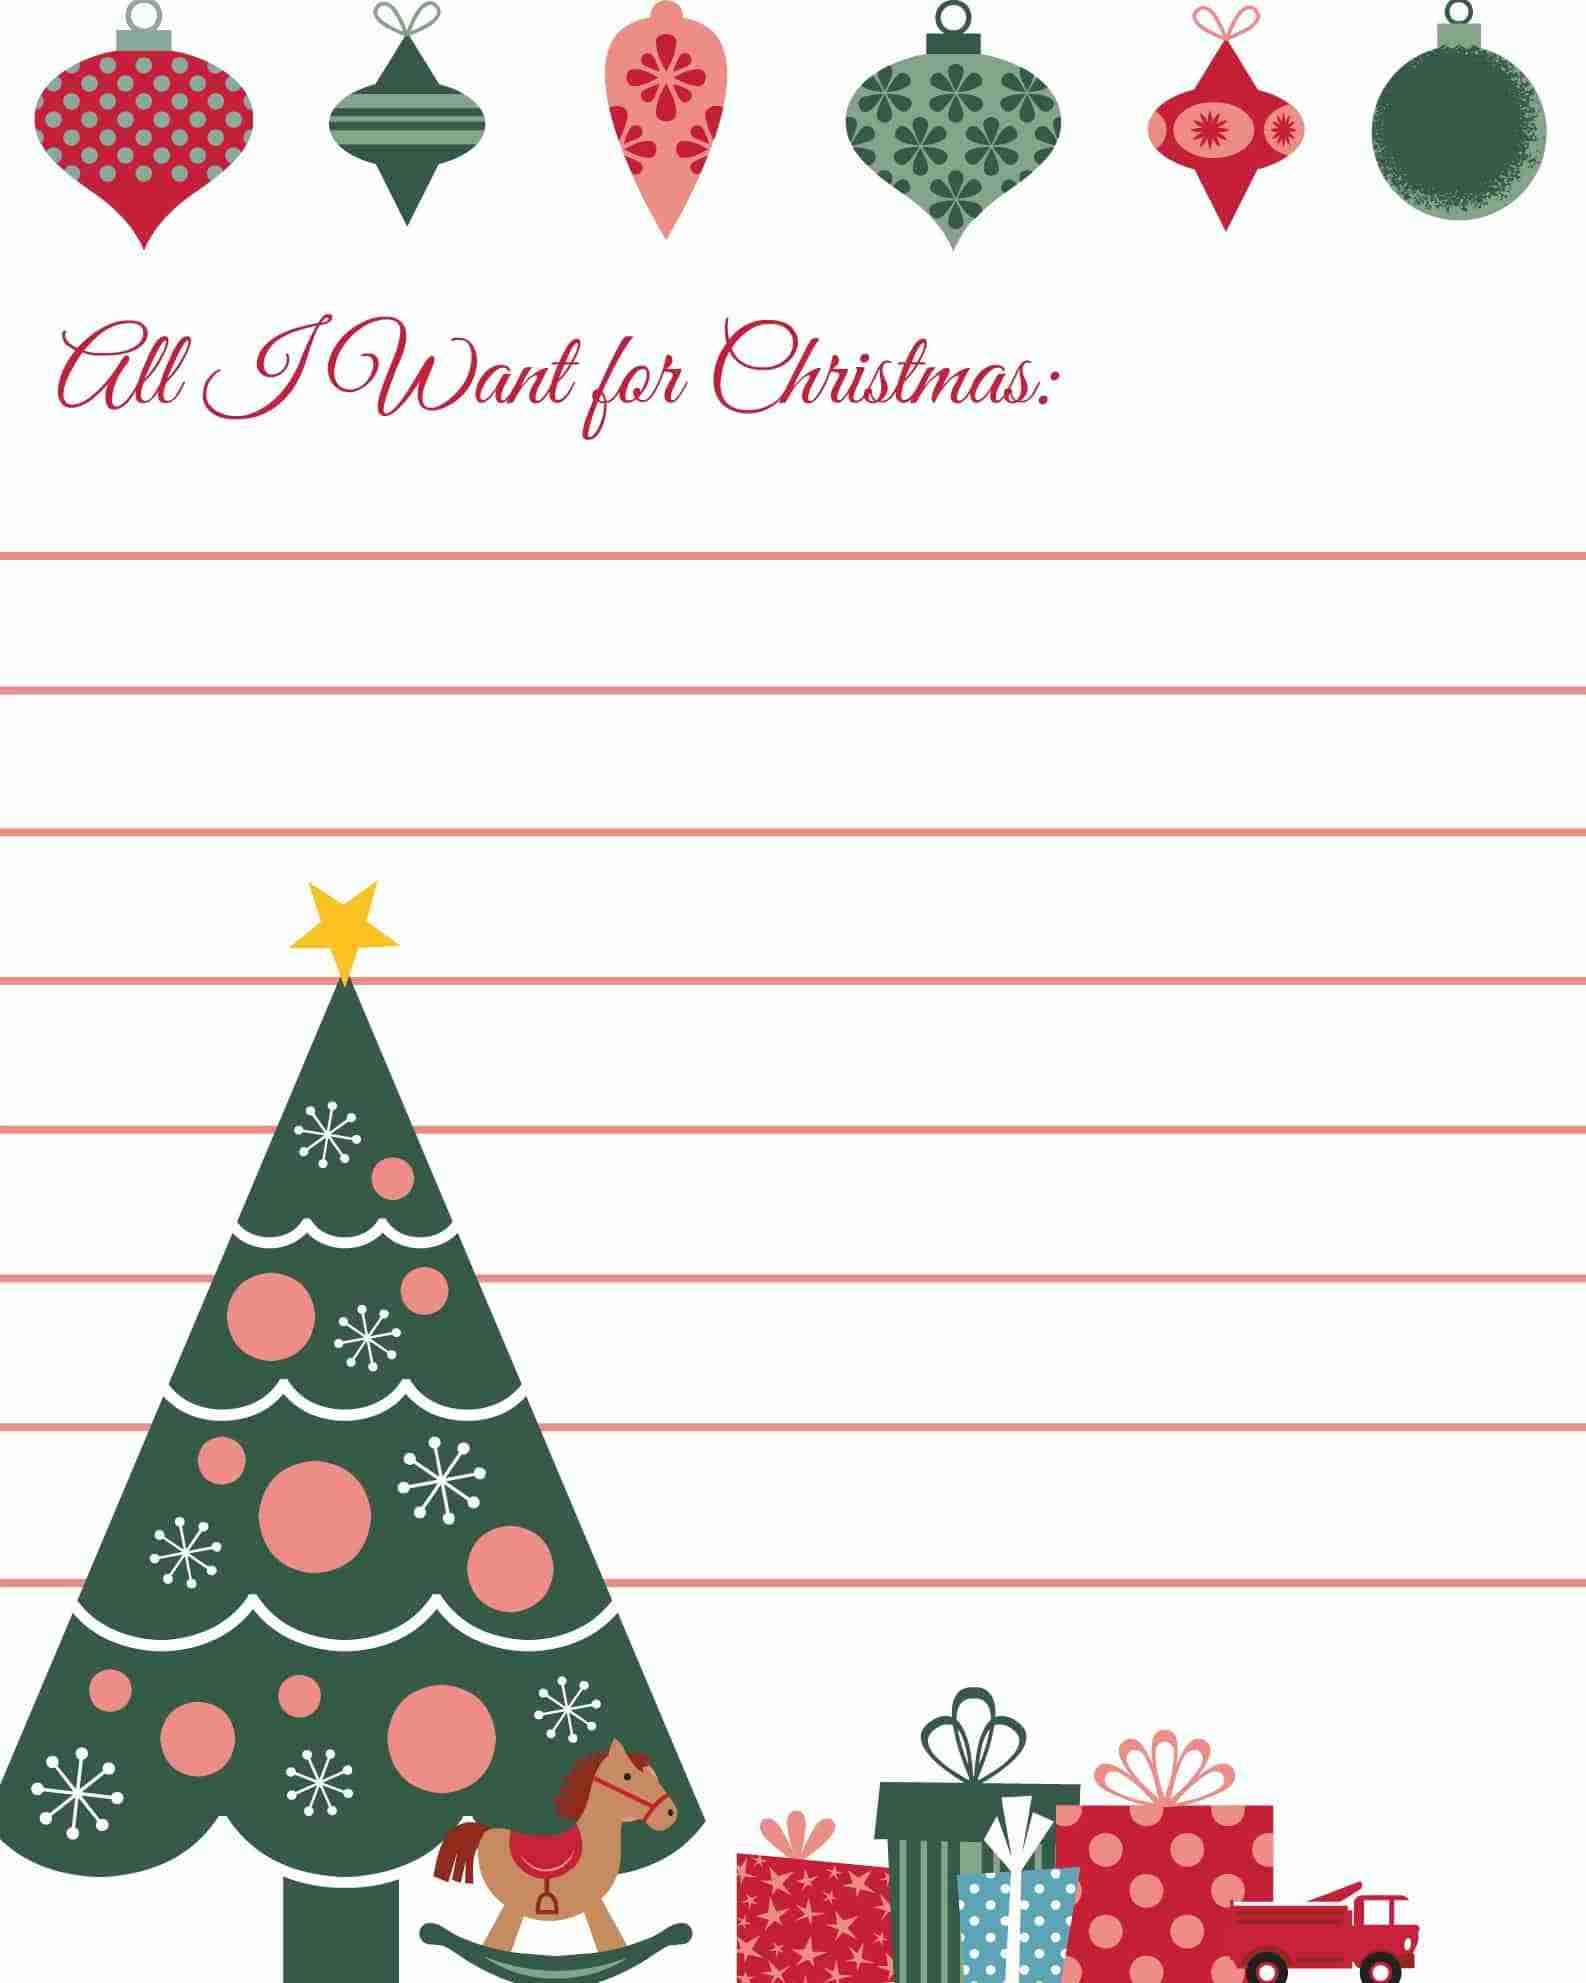 All I Want For Christmas Printable Wish List | Daily Dish Magazine |  Recipes | Travel | Crafts  Christmas Wish List Templates